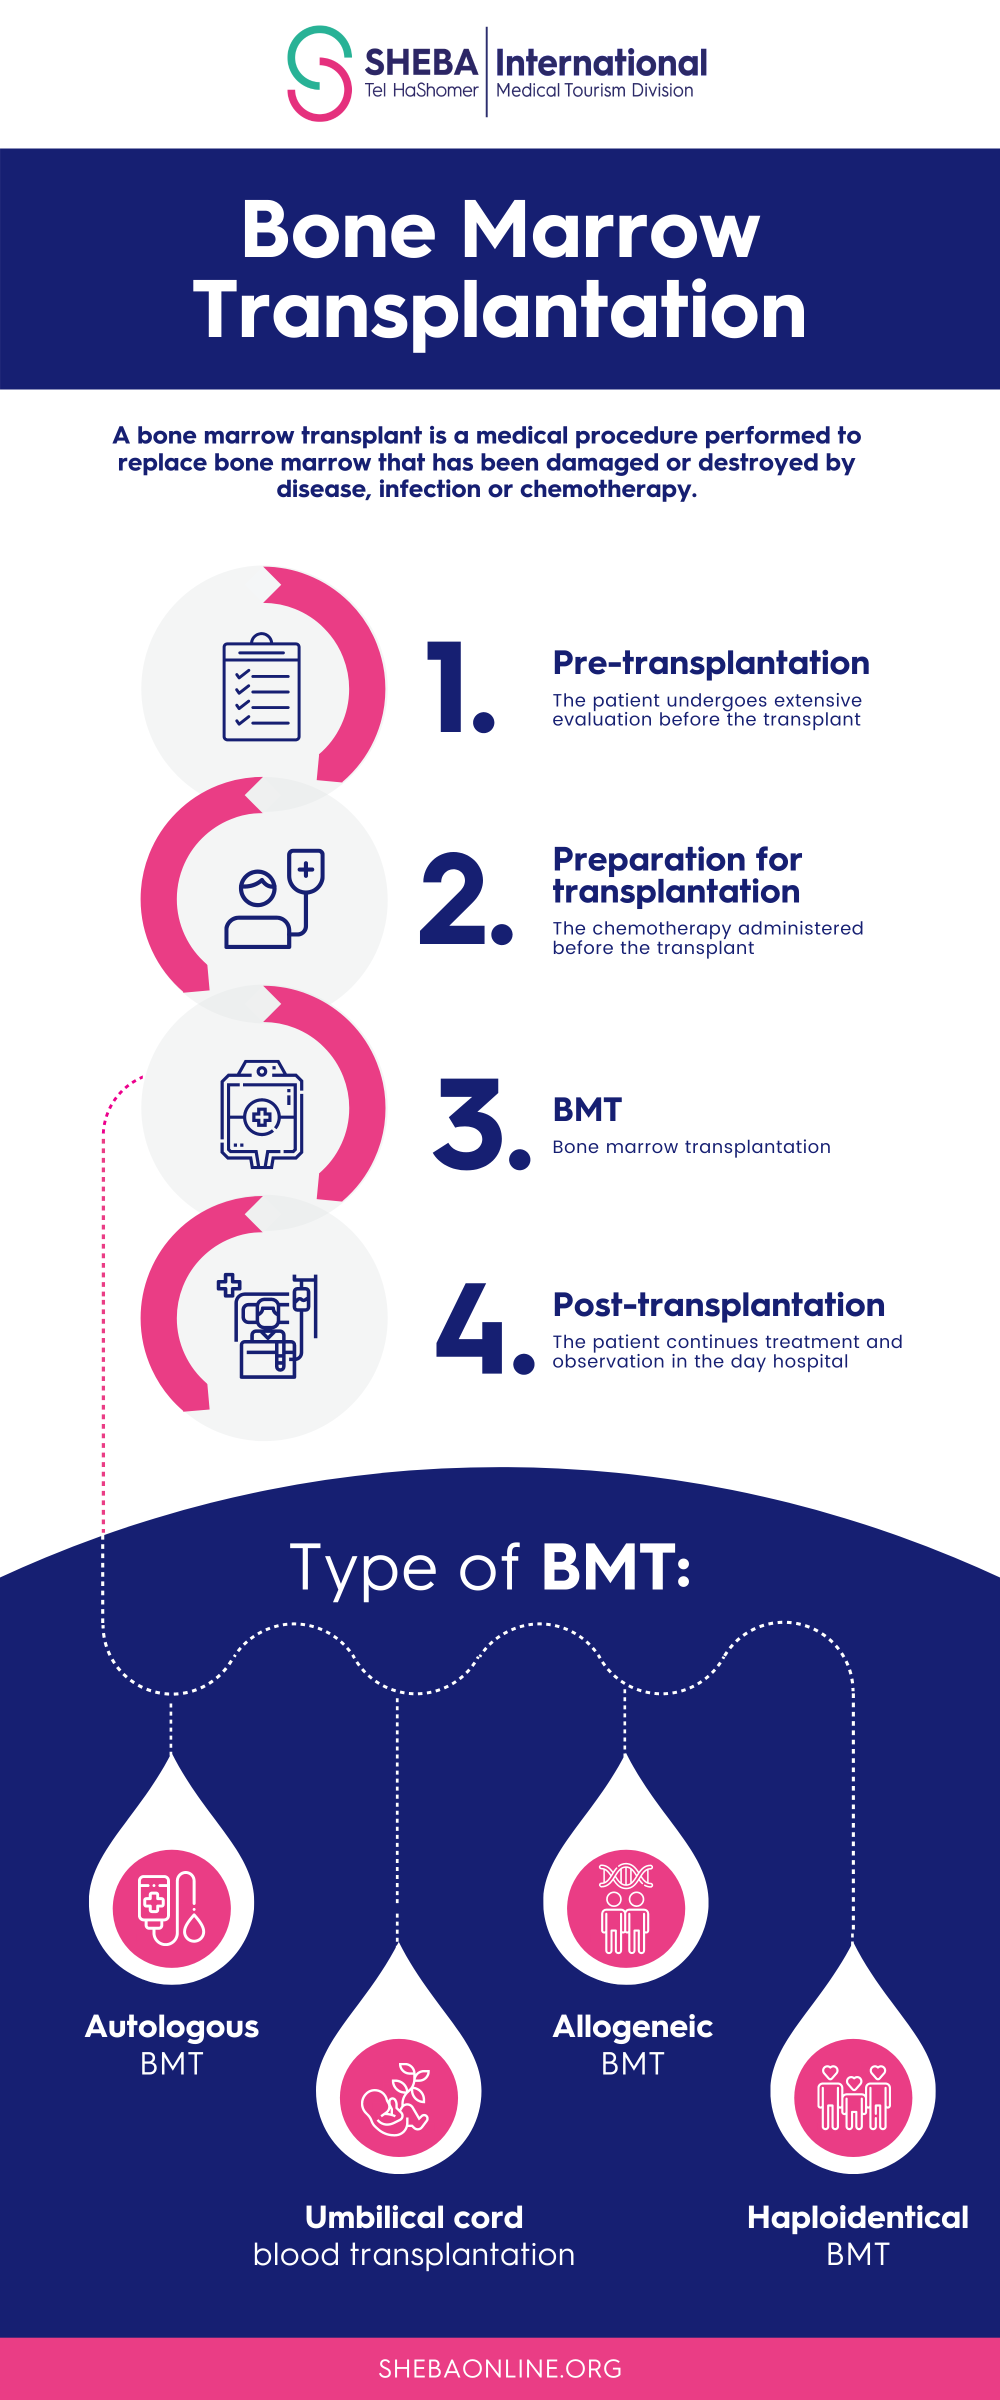 bmt infographic upd